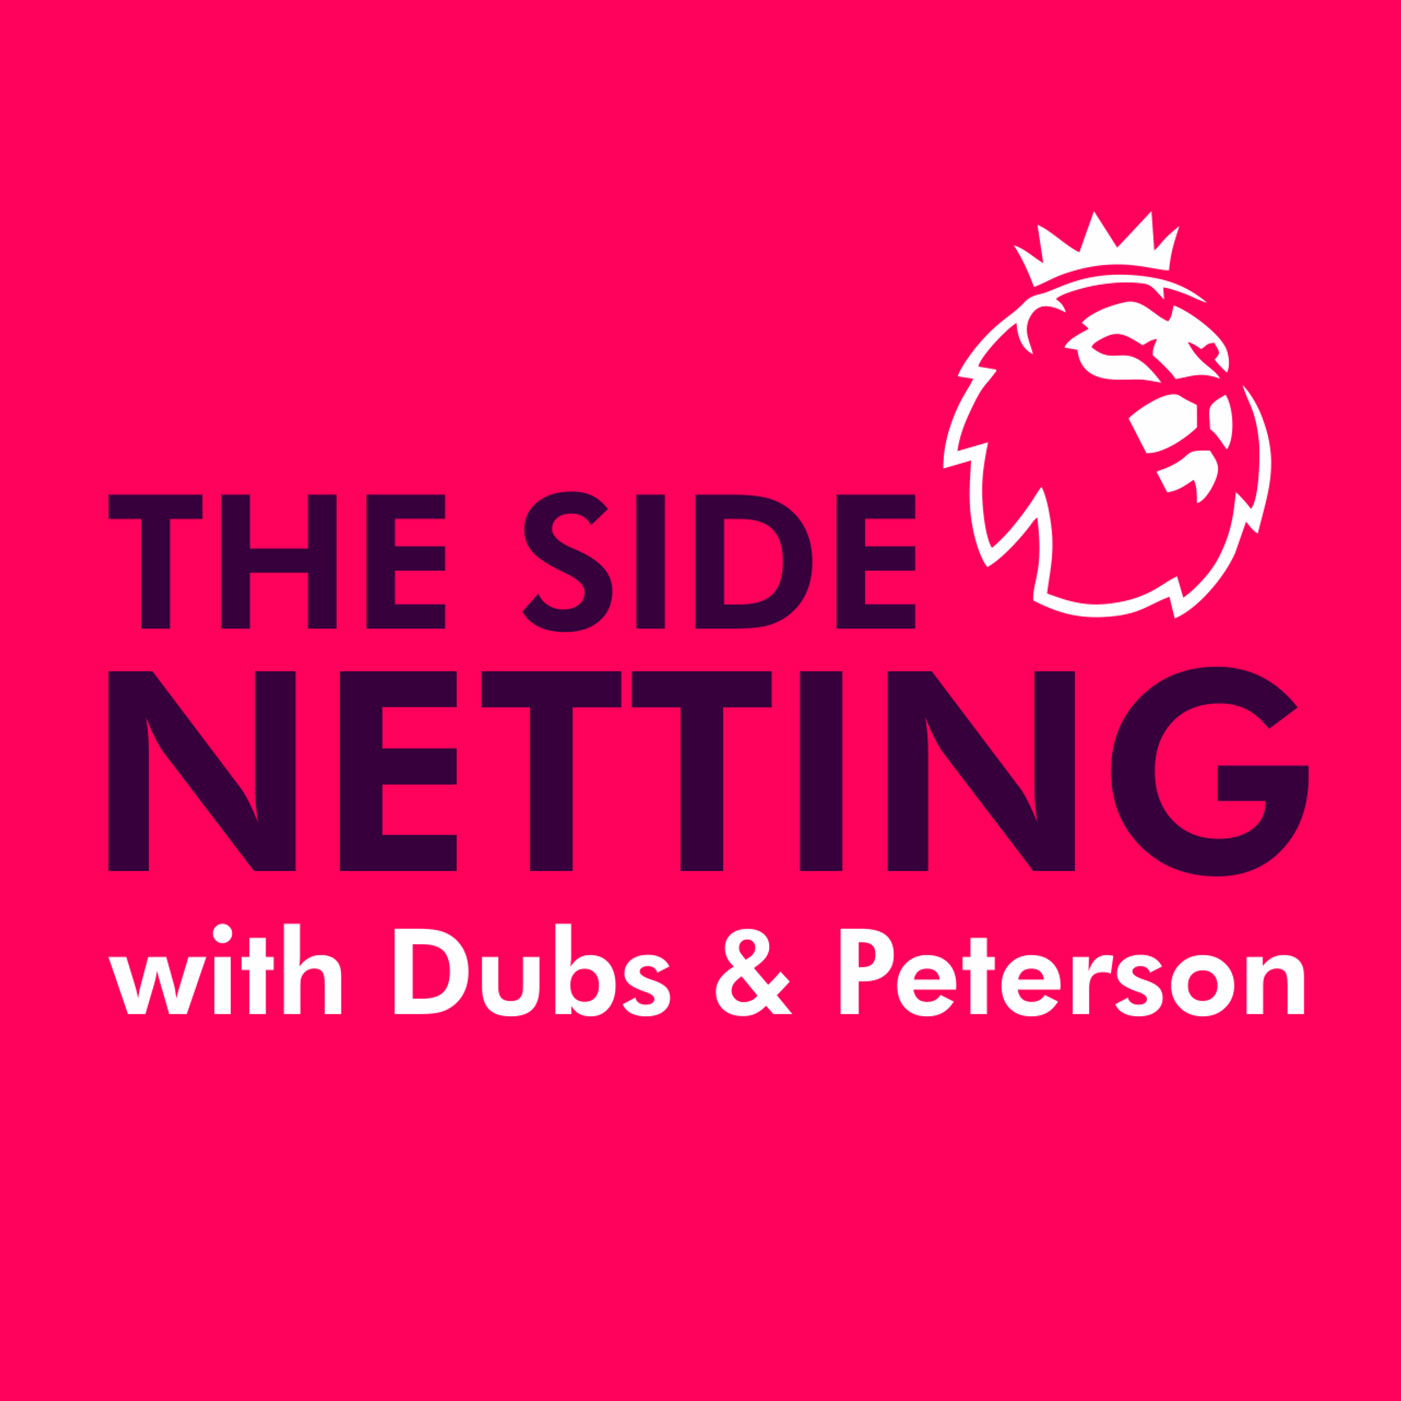 The Side-Netting